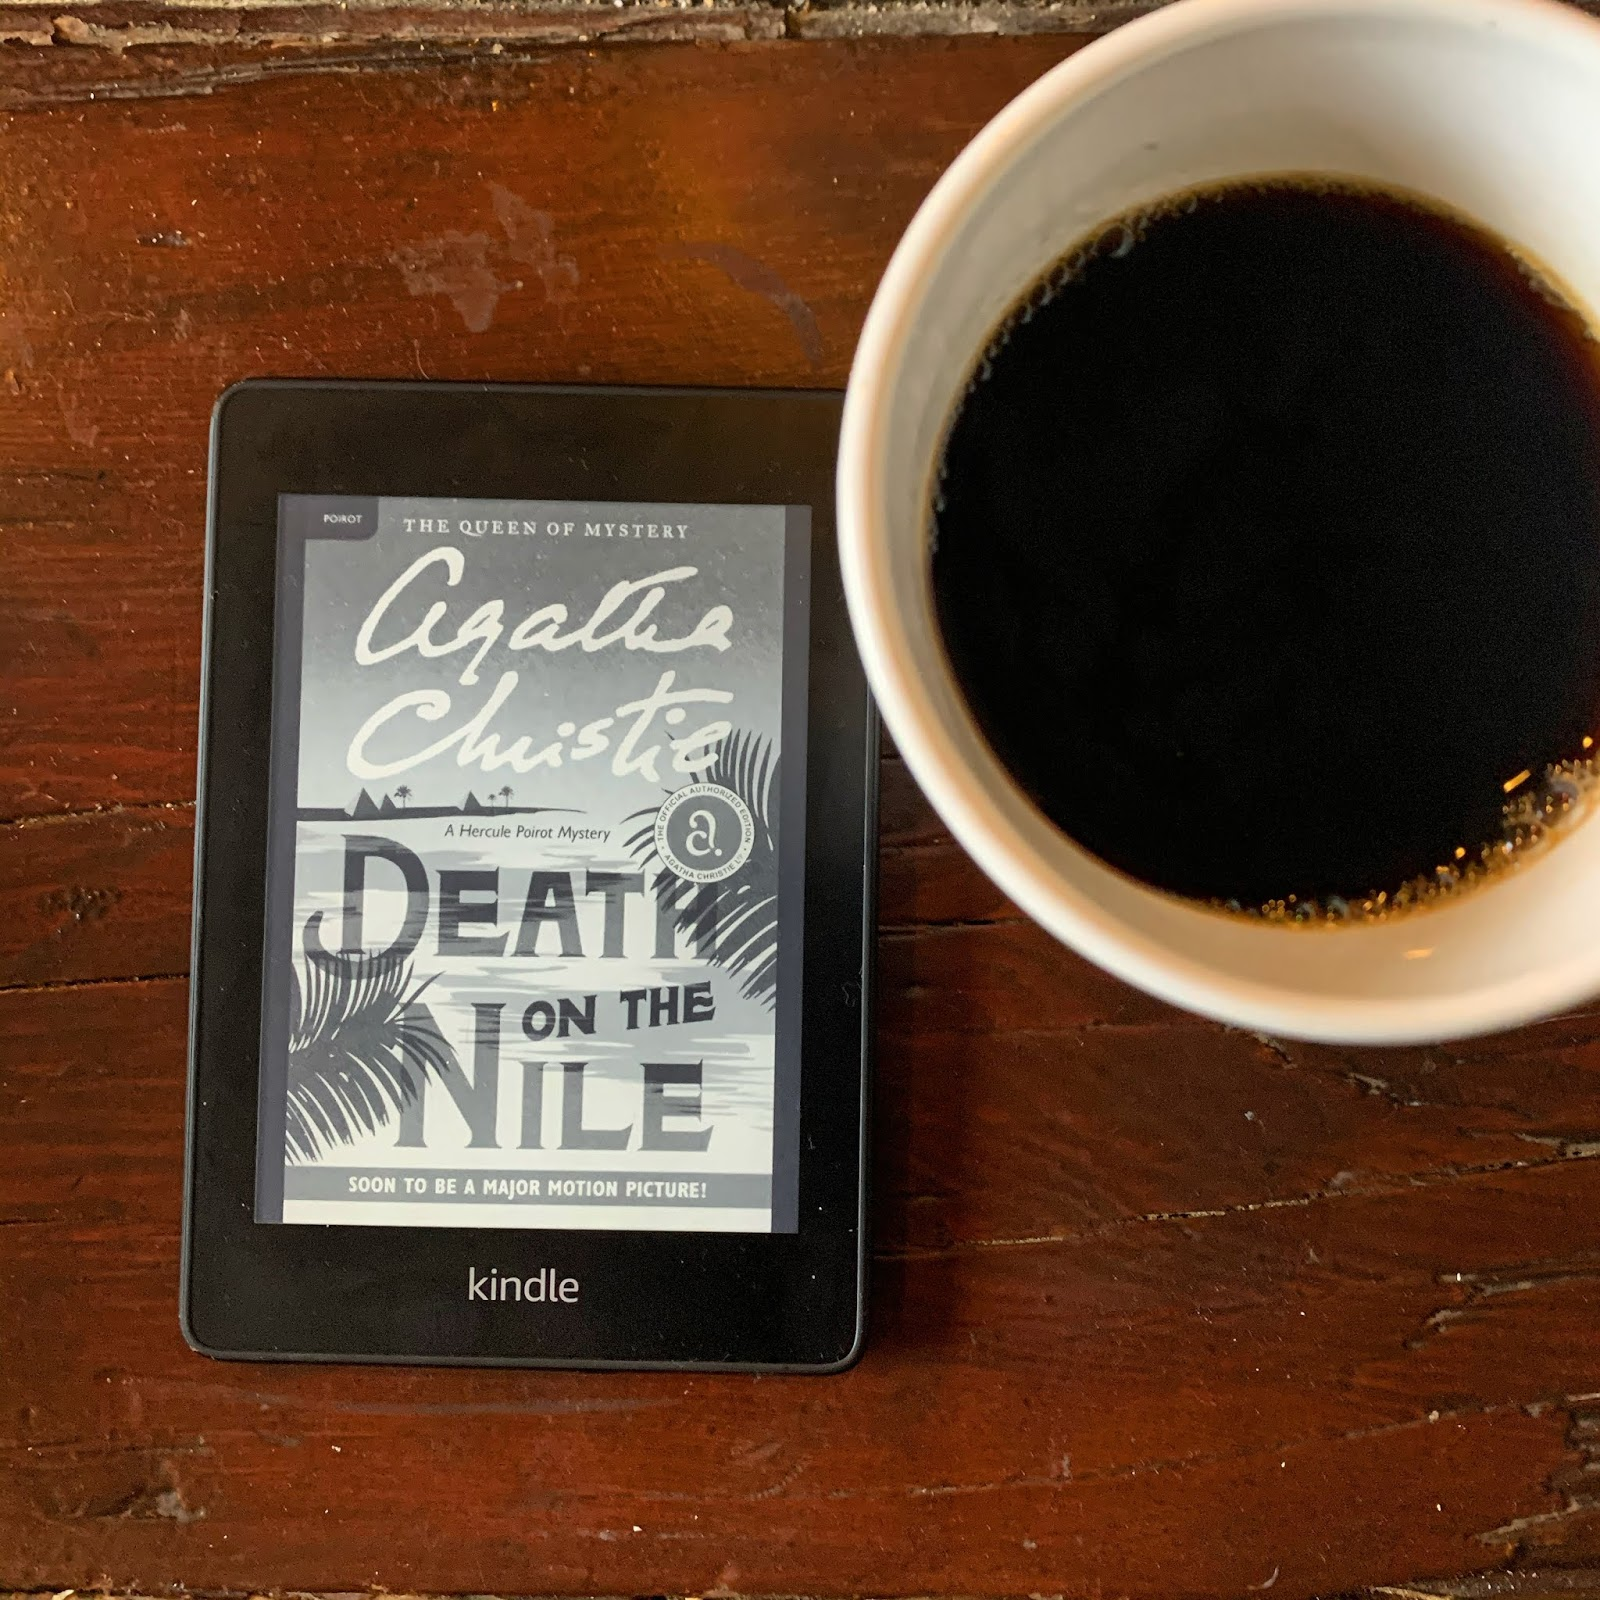 A kindle book with the title page for Death on The Nile by Agatha Christie with a cup of coffee next to it.